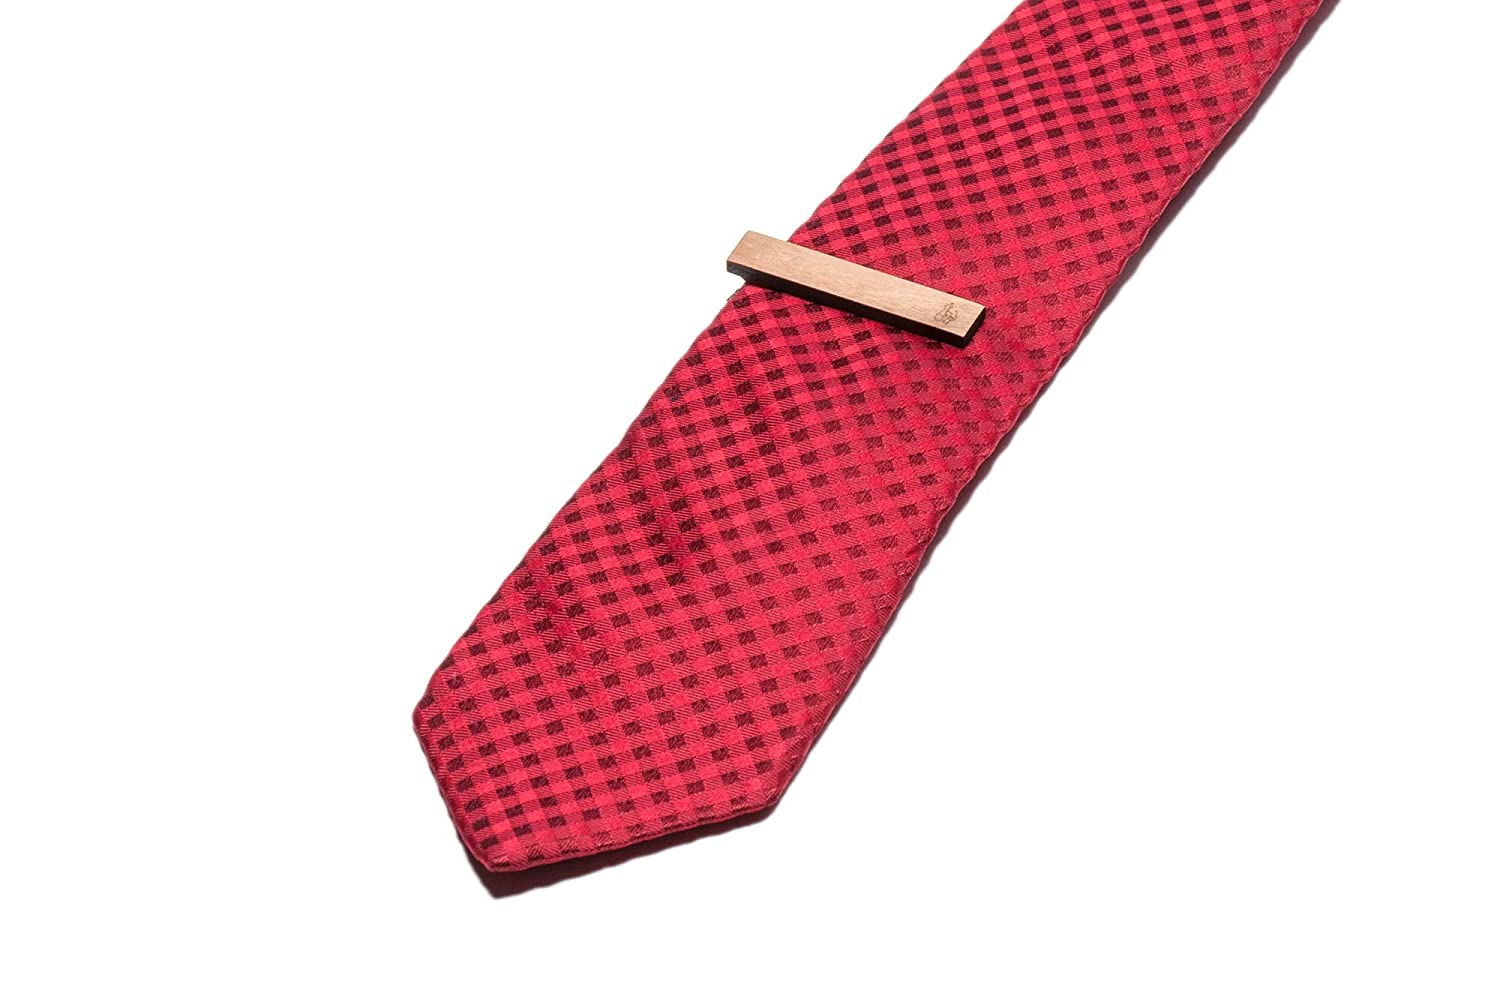 Wooden Accessories Company Wooden Tie Clips with Laser Engraved Zeus Design Cherry Wood Tie Bar Engraved in The USA